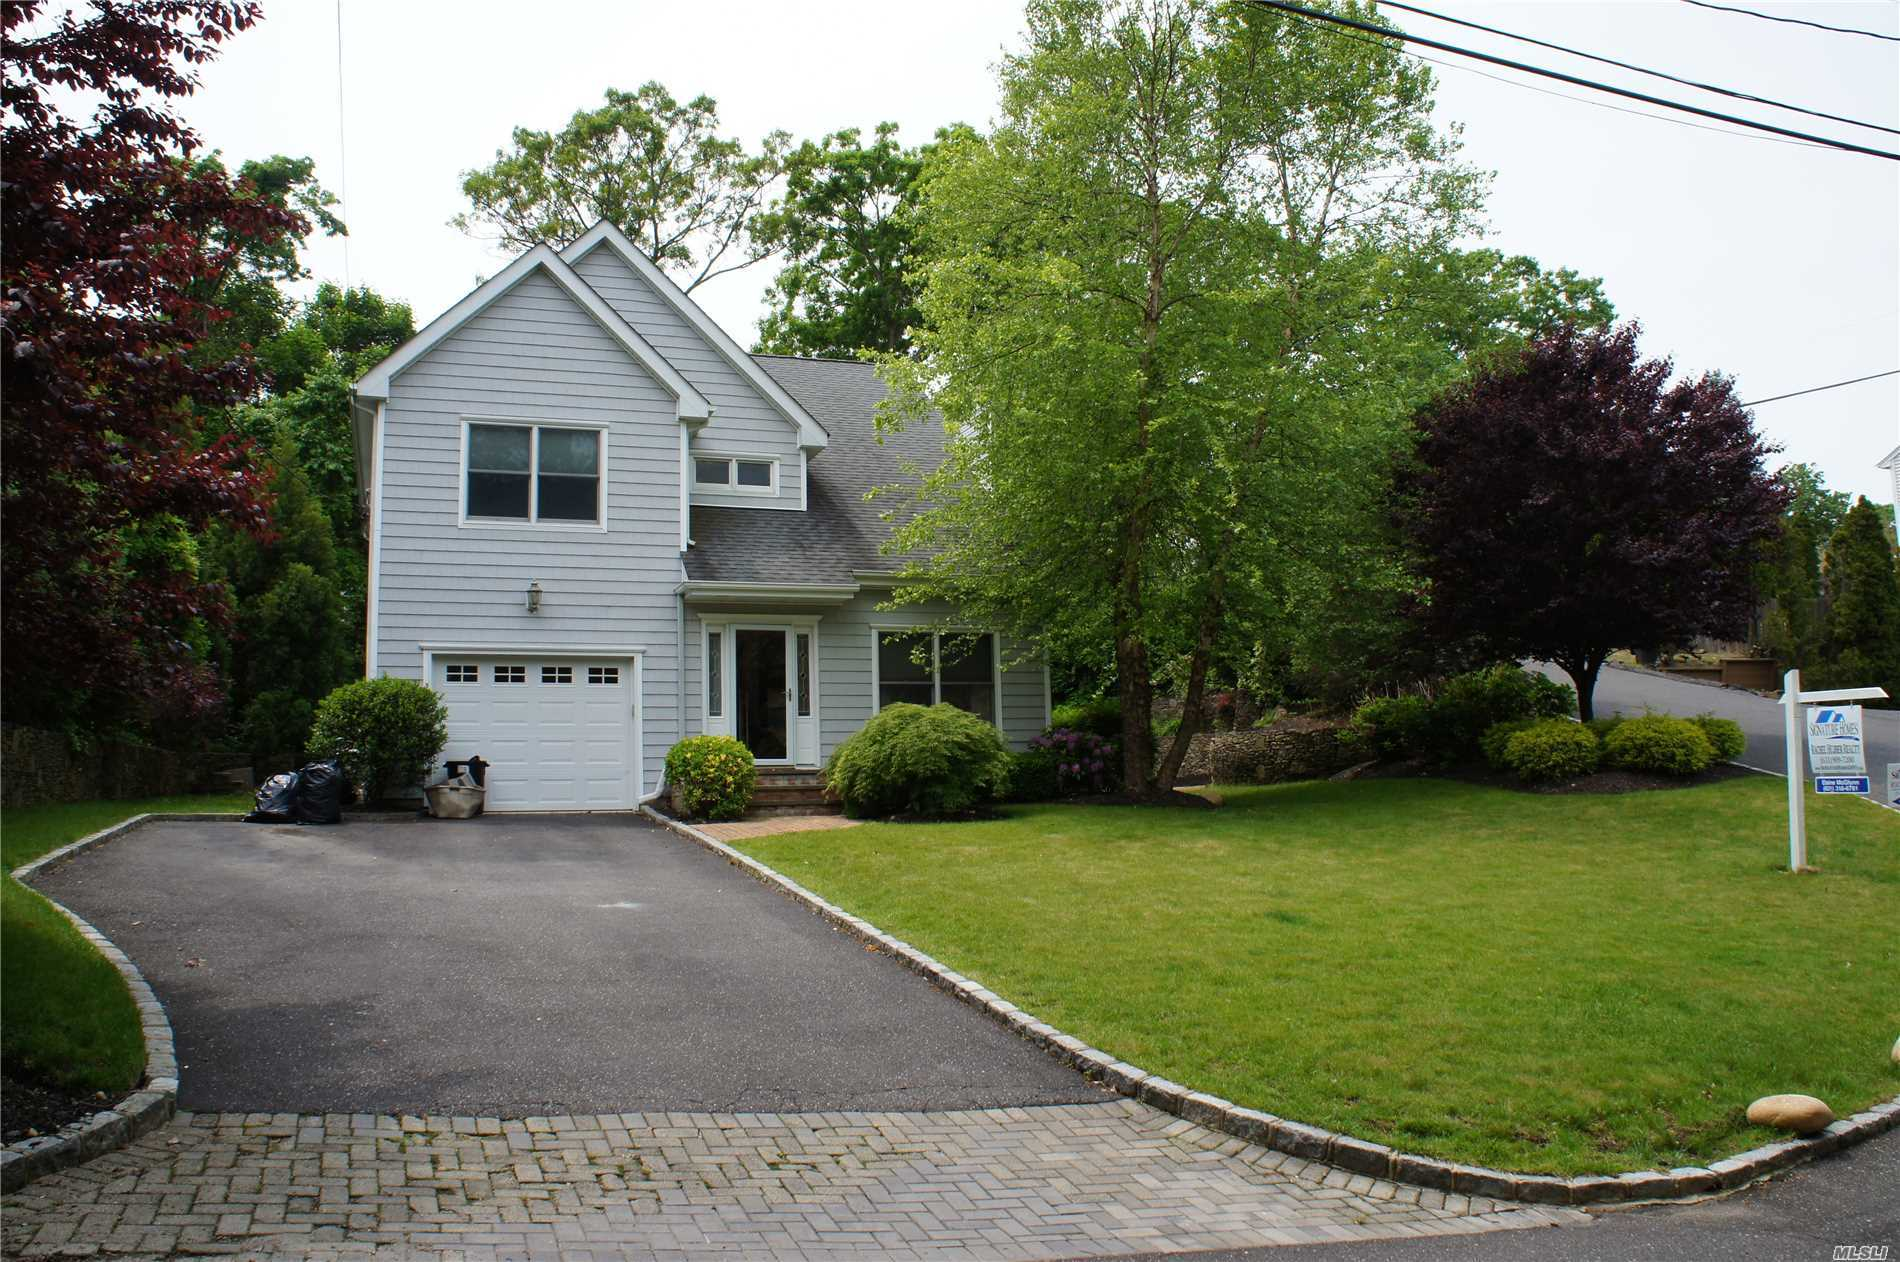 Diamond Post Modern With Open Floor Plan. Living Room w/ Fireplace. Eik w/Custom Cabinets & Center Island. Granite Counter Tops. Sliders Over Looking Brick Patio. Wood Floors Throughout, Laundry Room, Office. Master Suite w/ Walk In Closet & Beautiful Master Bath. New Water Heater, New 1200 Gallon Drainage System. Professional Landscaped. Private Beach Rights.. Solar Panels Negotiable.. A Must See..